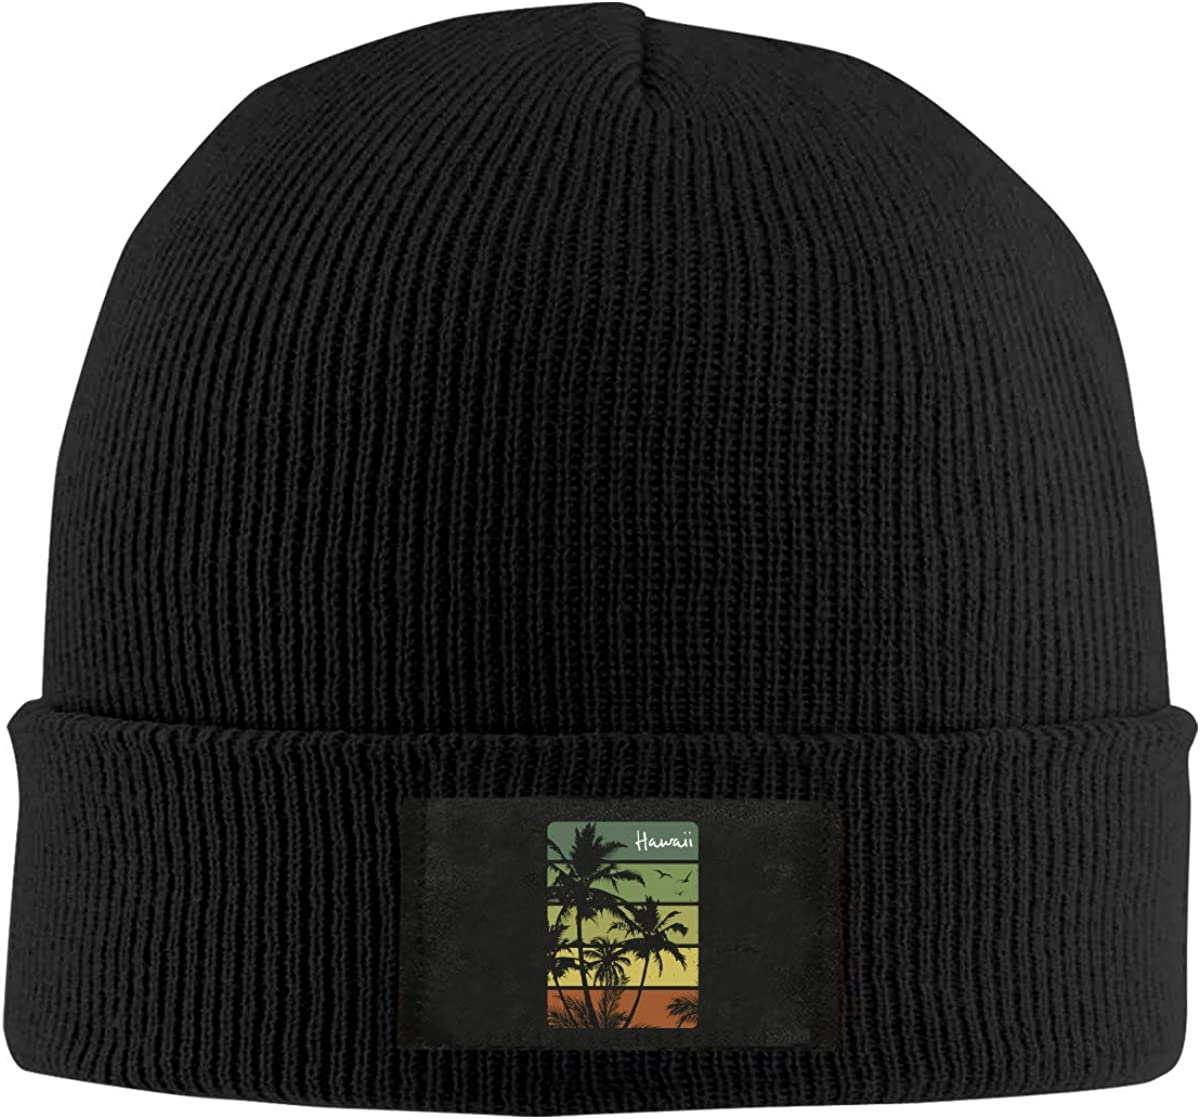 Unisex Vintage Hawaiian1 Skull Cap Knit Wool Beanie Hat Stretchy Solid Daily Wear